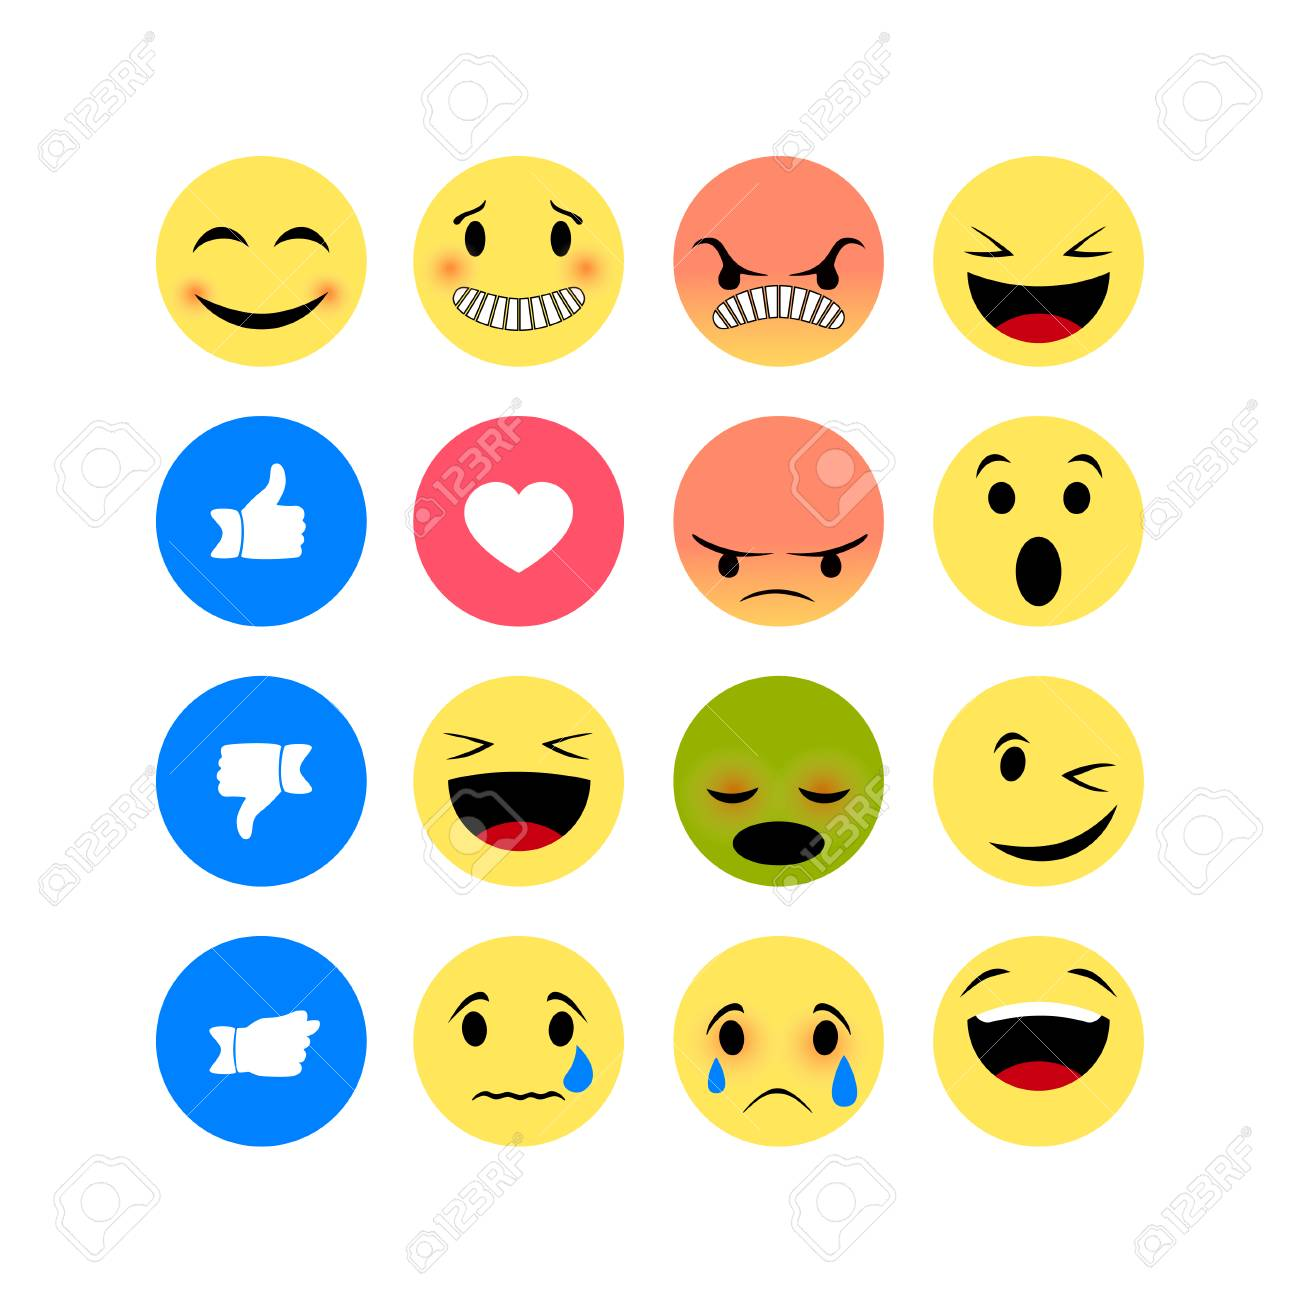 emotion icons isolated on white background funny emoji icon royalty free cliparts vectors and stock illustration image 111345509 emotion icons isolated on white background funny emoji icon